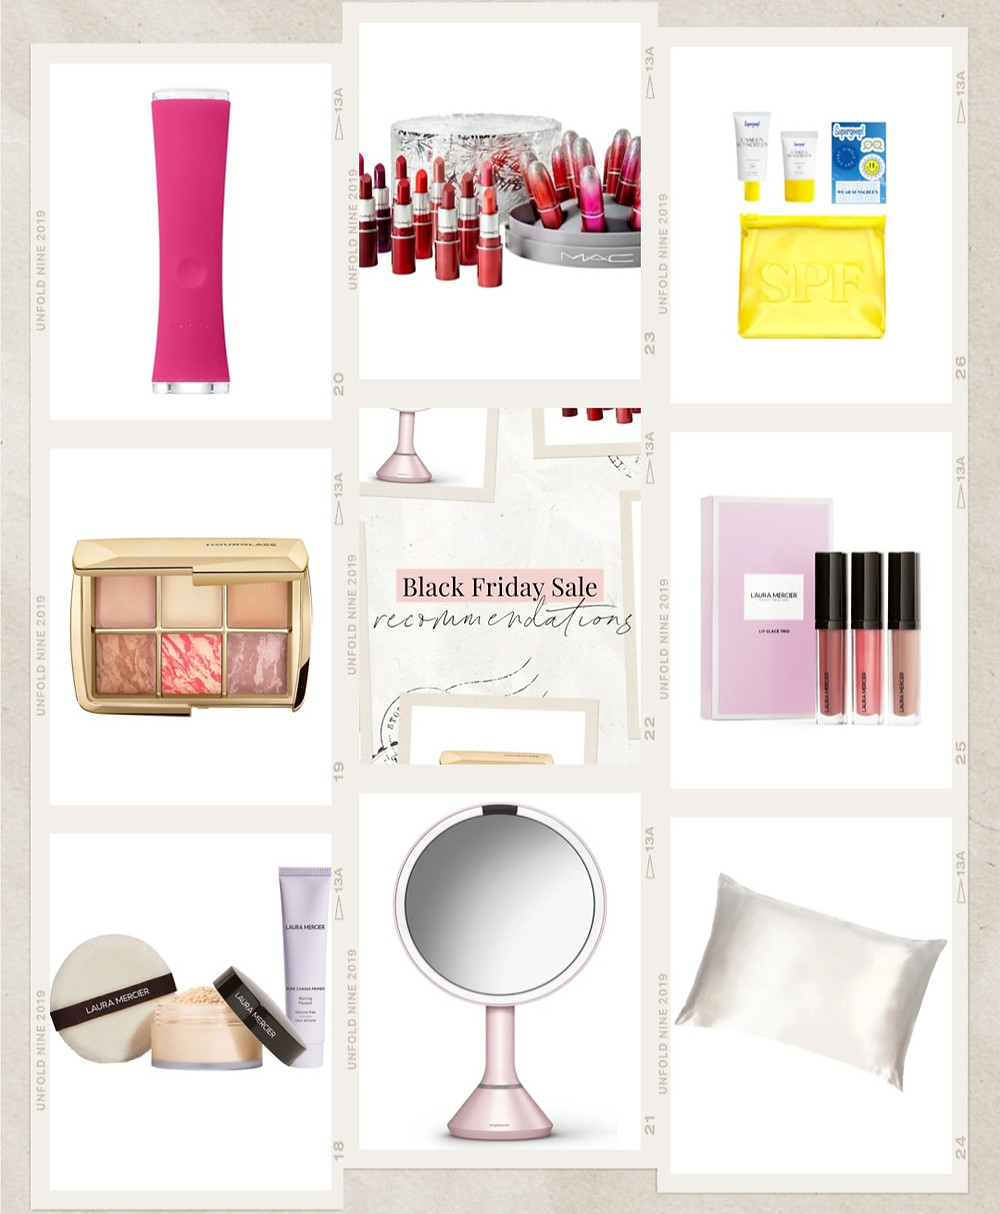 Black Friday Sale Recommendations Beauty